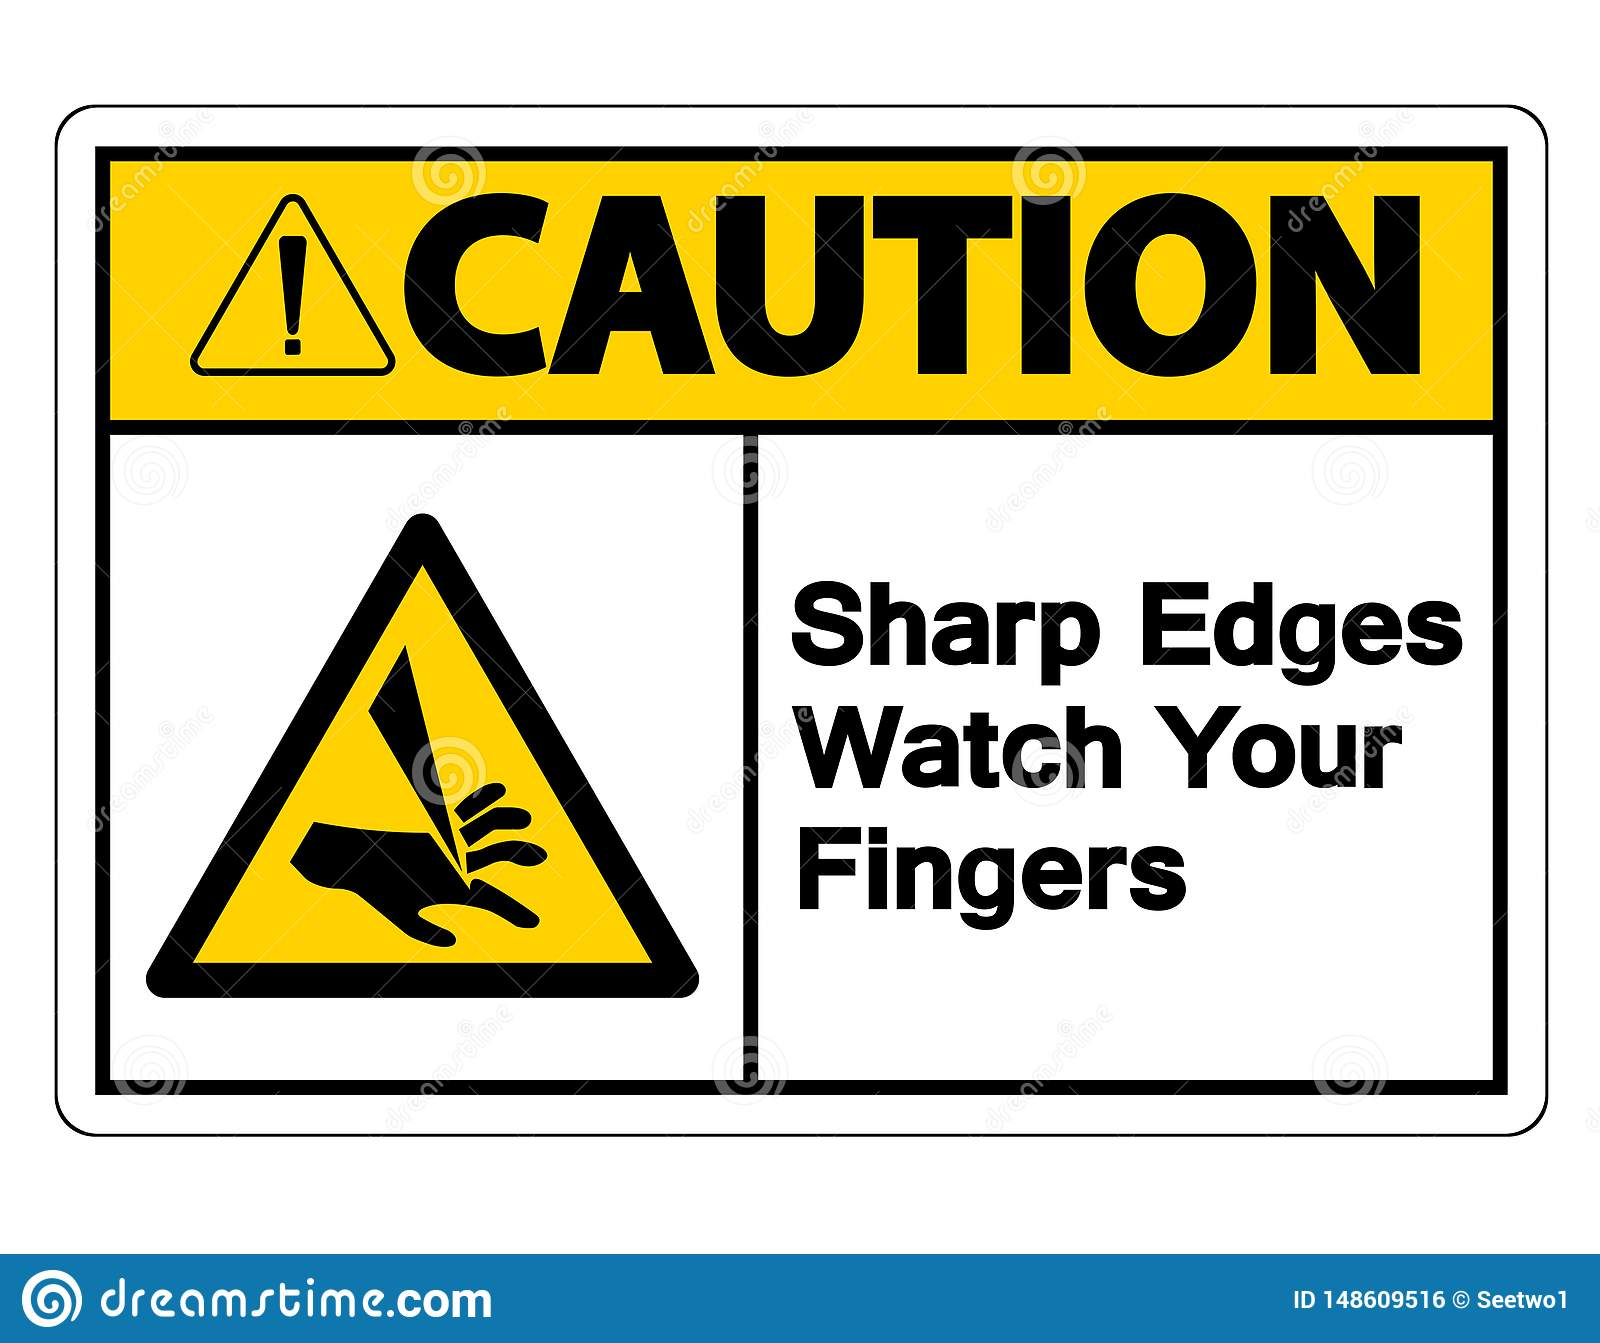 Caution Sharp Edges Watch Your Fingers Symbol Sign On